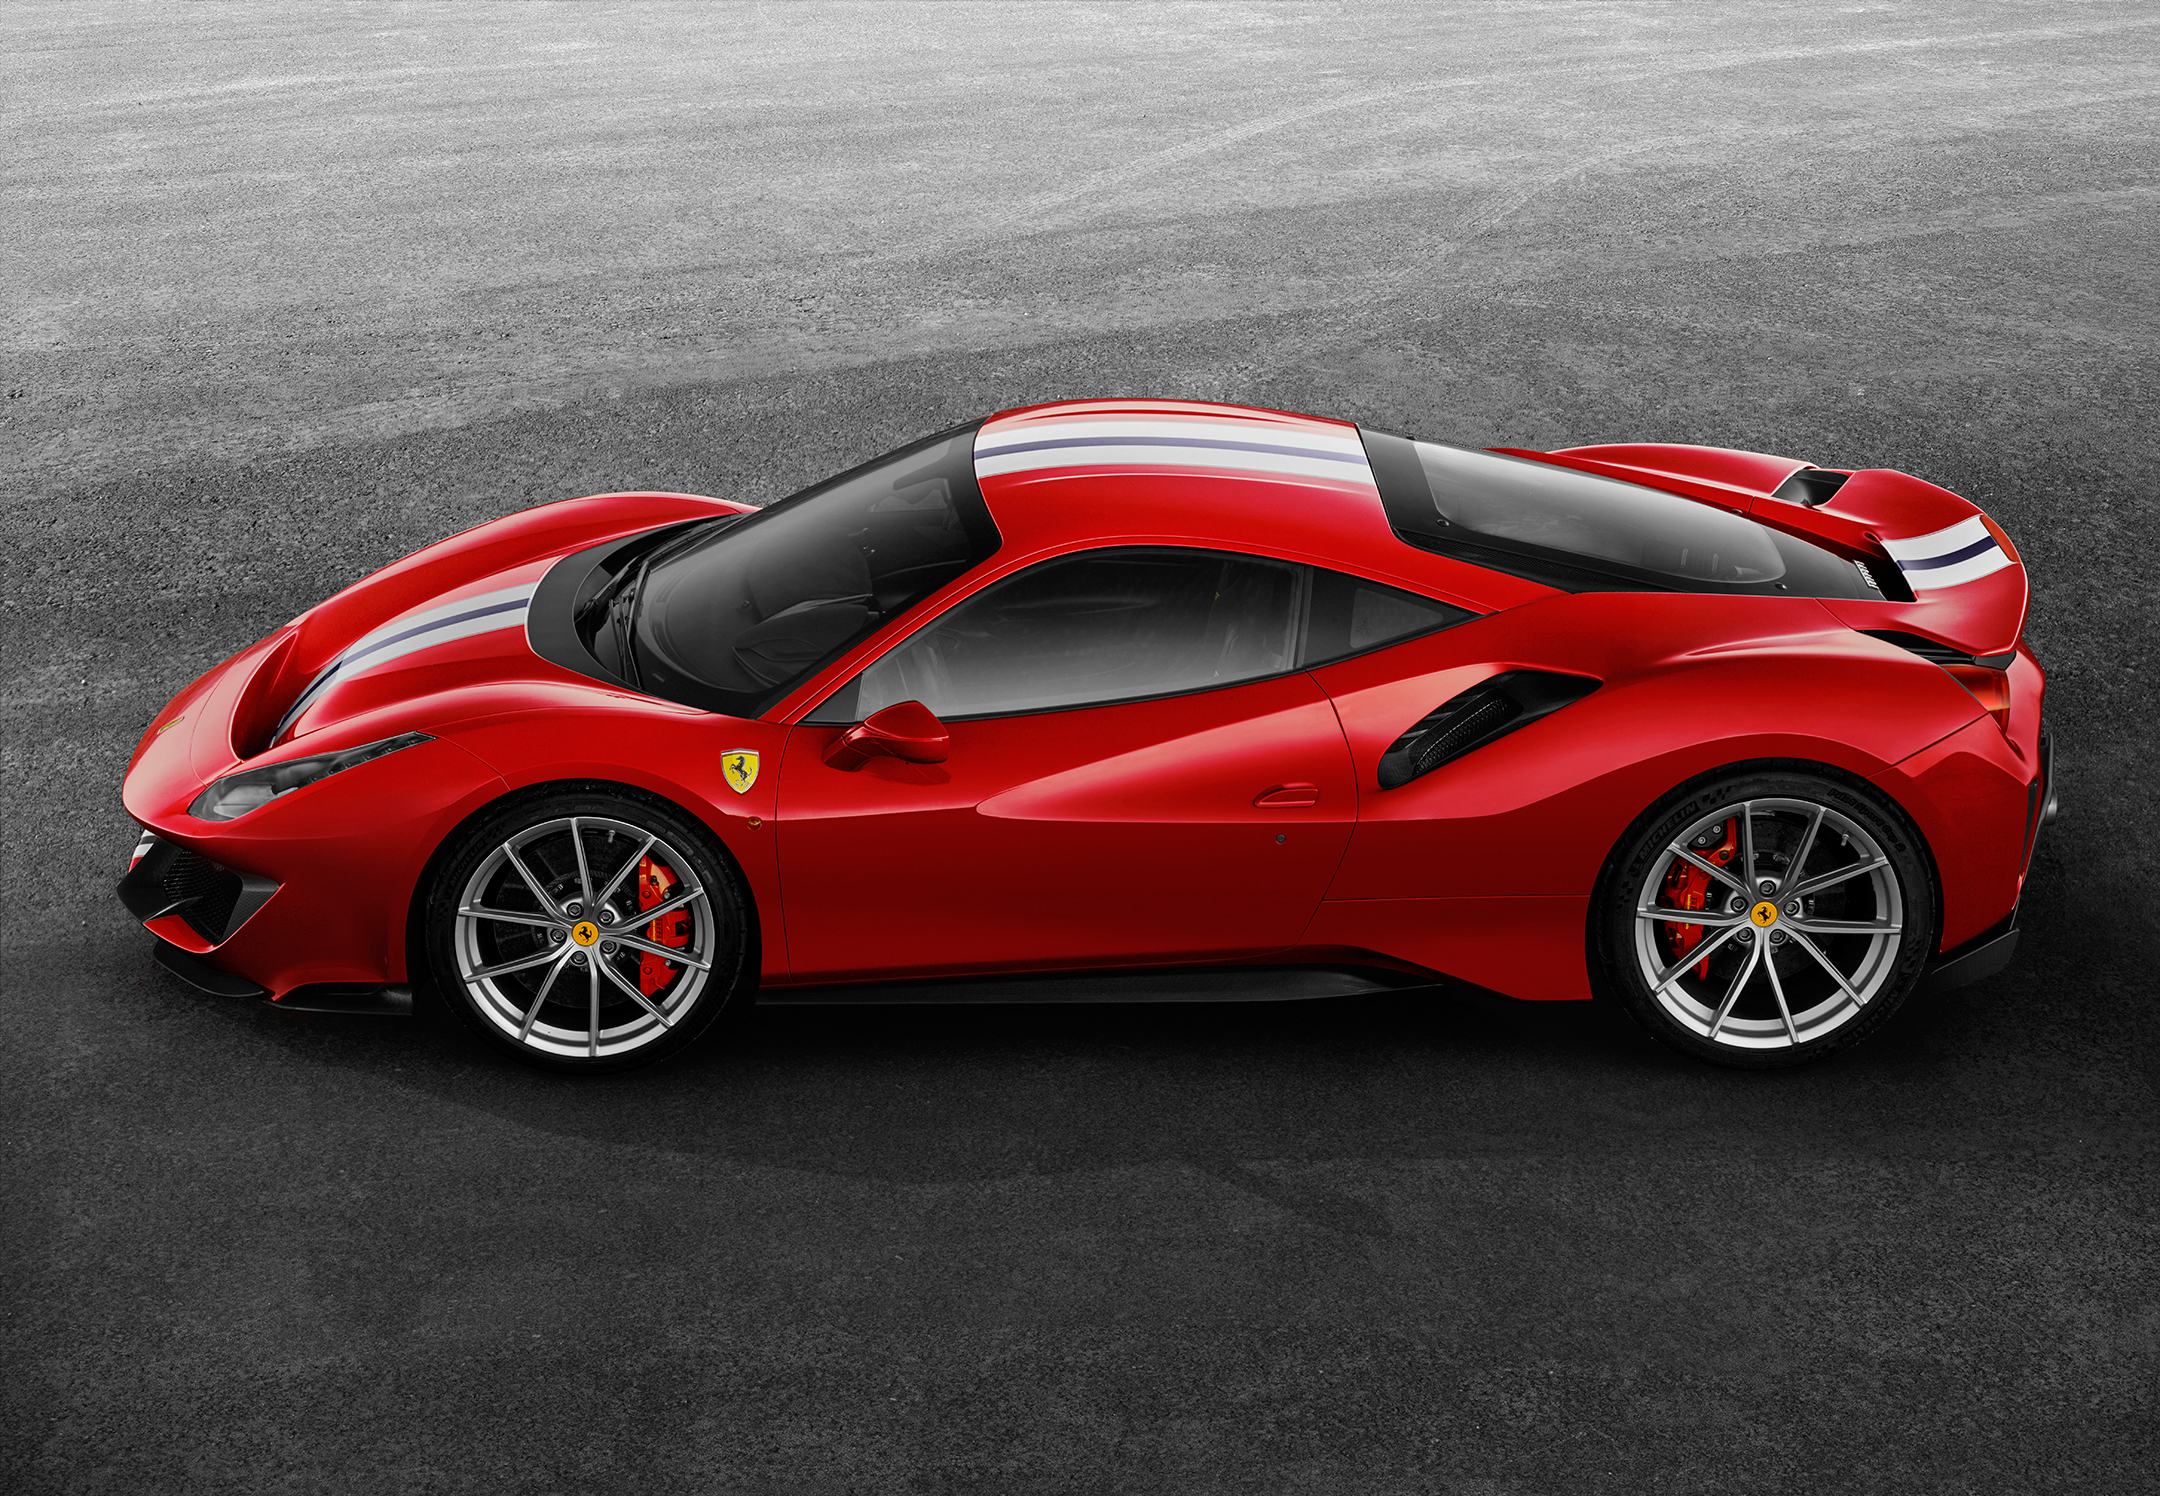 Ferrari 488 Pista - 2018 - side-face / profil